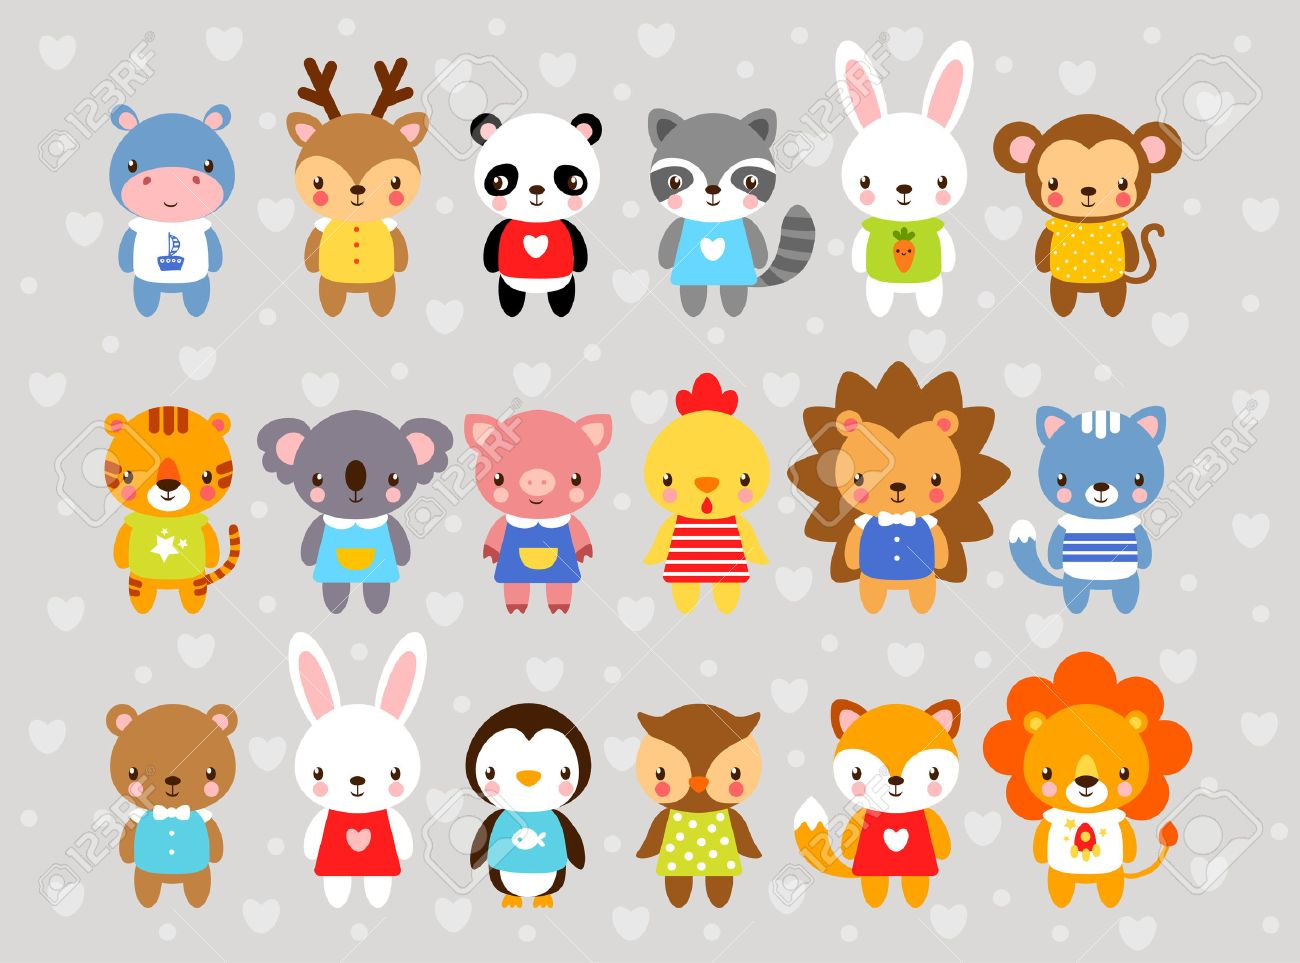 Set of vector animals in cartoon style. Cute animals on a gray background. A collection of small animals in the children's style. Africa, tropics, antarctica, farm, forest. - 60483700